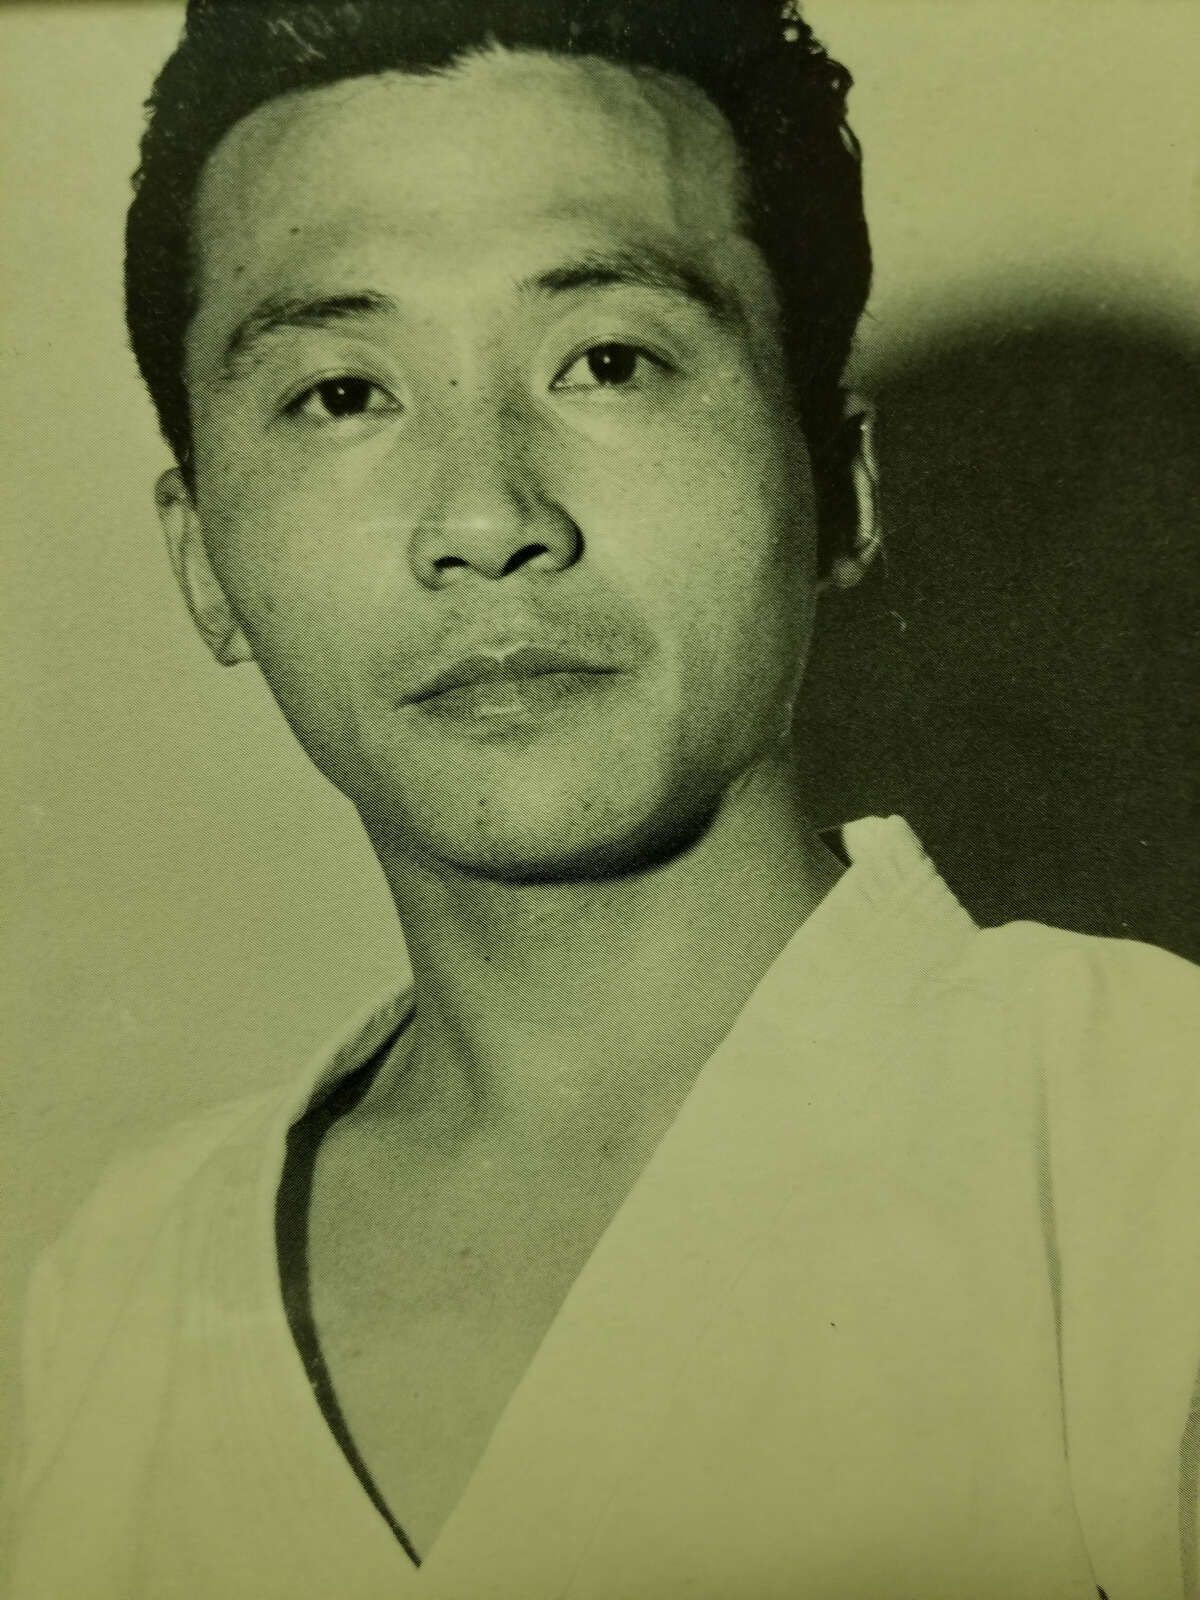 Kim Soo in his first photograph after immigrating to Texas from South Korea in 1968.